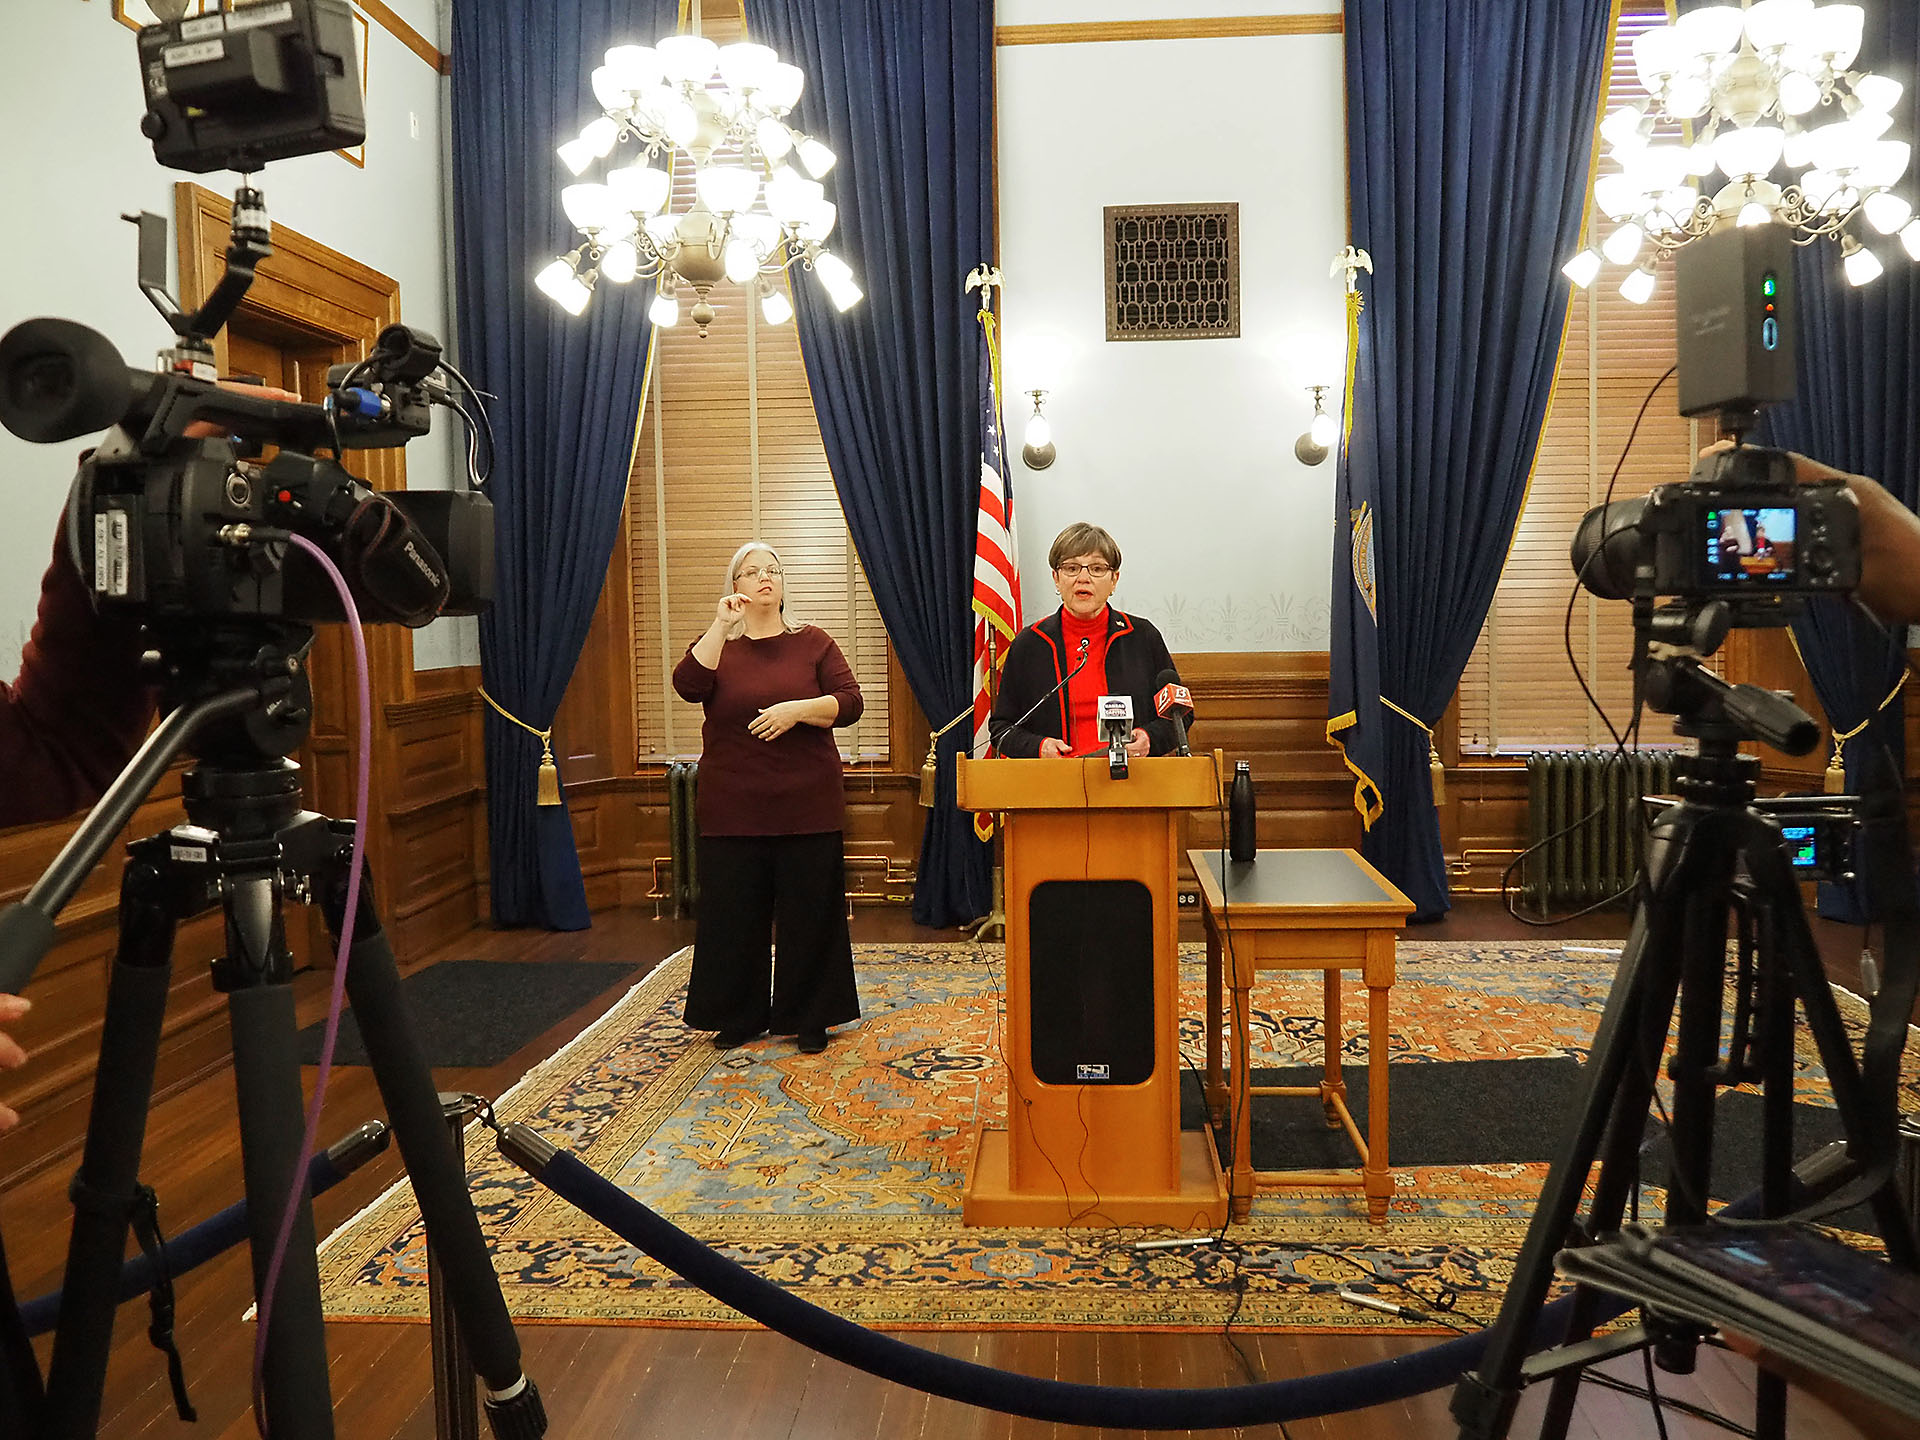 Gov. Laura Kelly proposed Wednesday talks with Kansas legislative leaders to search for a bipartisan agreement on a statewide mask requirement to shield people against COVID-19. Eighty counties have opted out of Kelly's mask mandate issued in July. (Sherman Smith/Kansas Reflector)